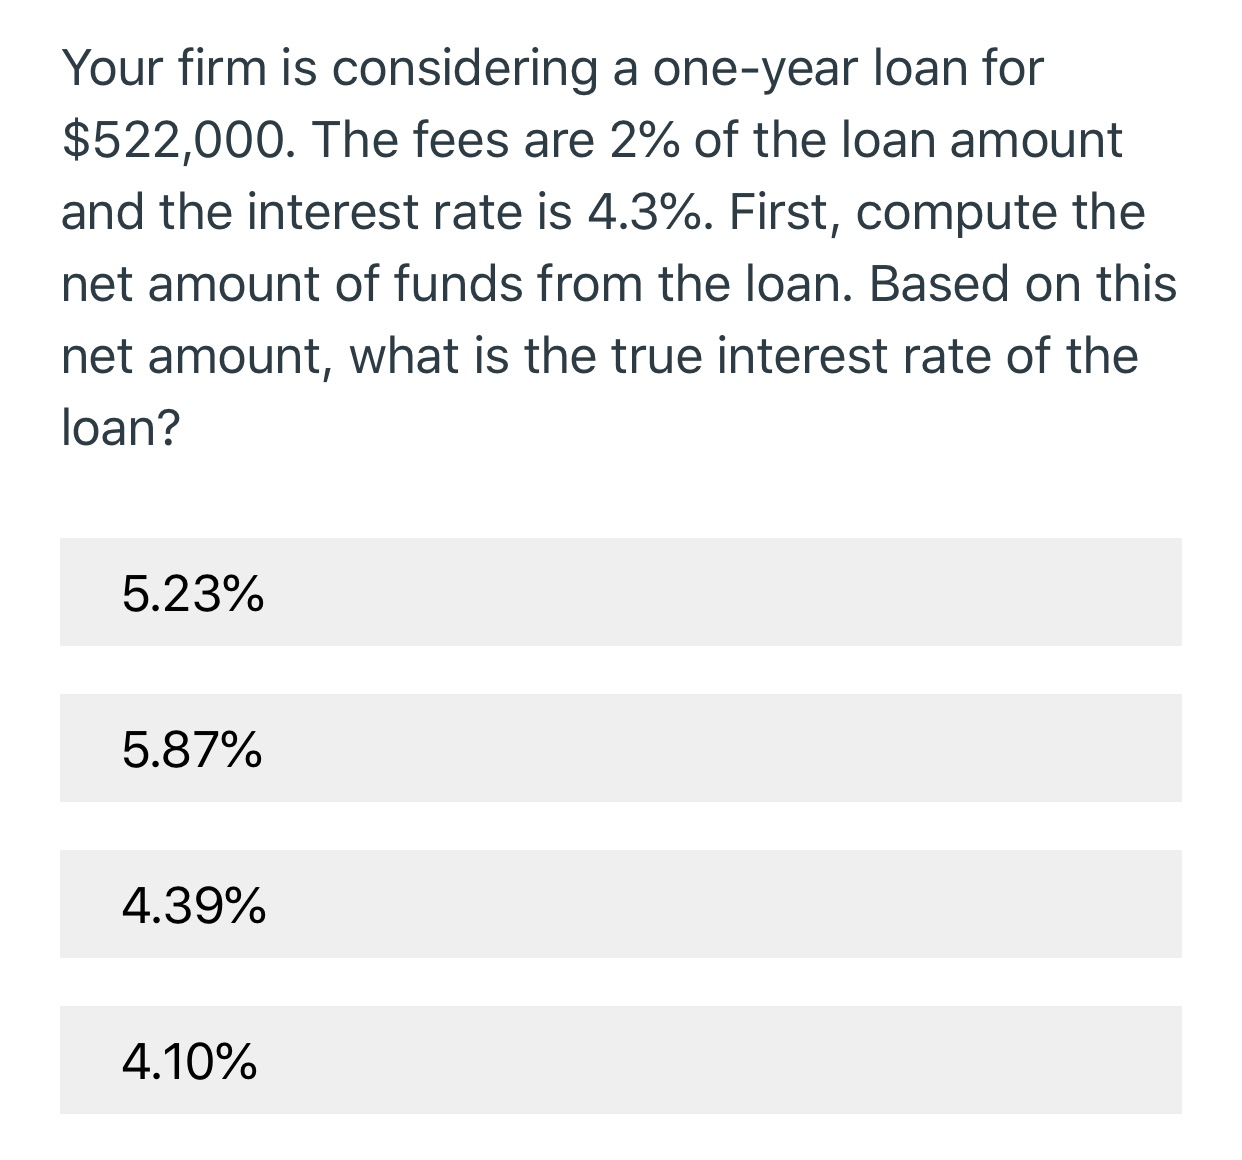 Your firm is considering a one-year loan for $522,000. The fees are 2% of the loan amount and the interest rate is 4.3%. First, compute the net amount of funds from the loan. Based on this net amount, what is the true interest rate of the loan? 5.23% 5.87% 4.39% 4.10%